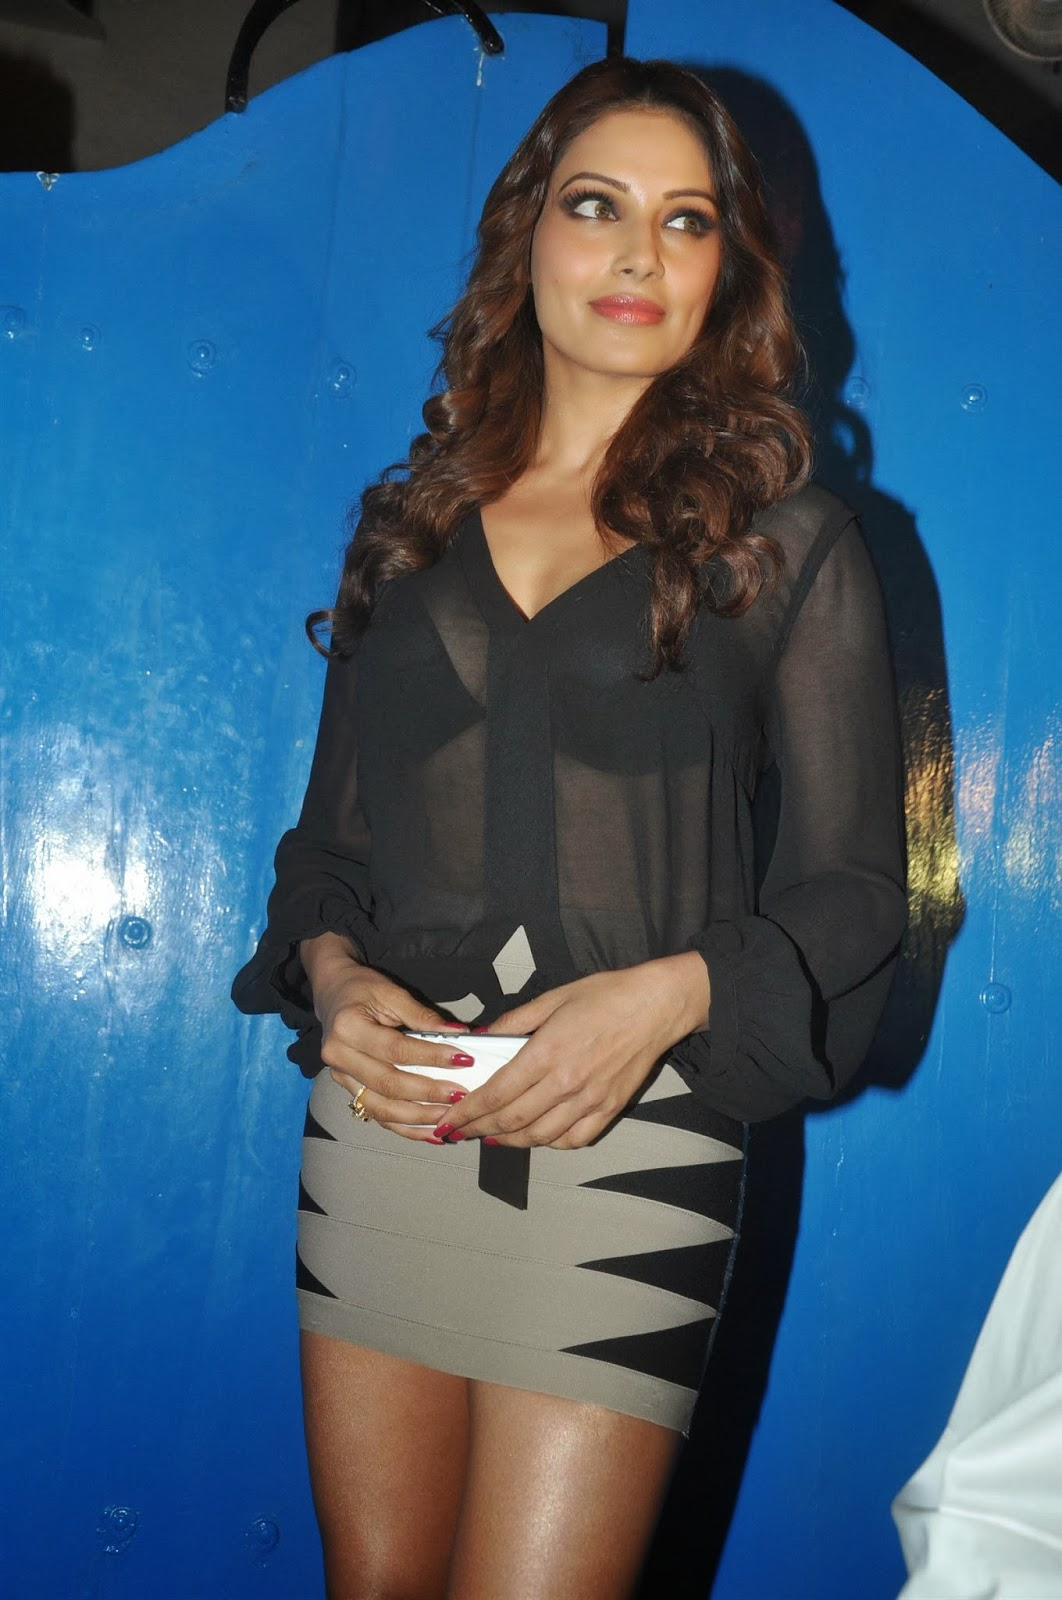 Bipasha Basu in tight skirt at Dabboo Ratnani's 2014 Calendar Launch ...